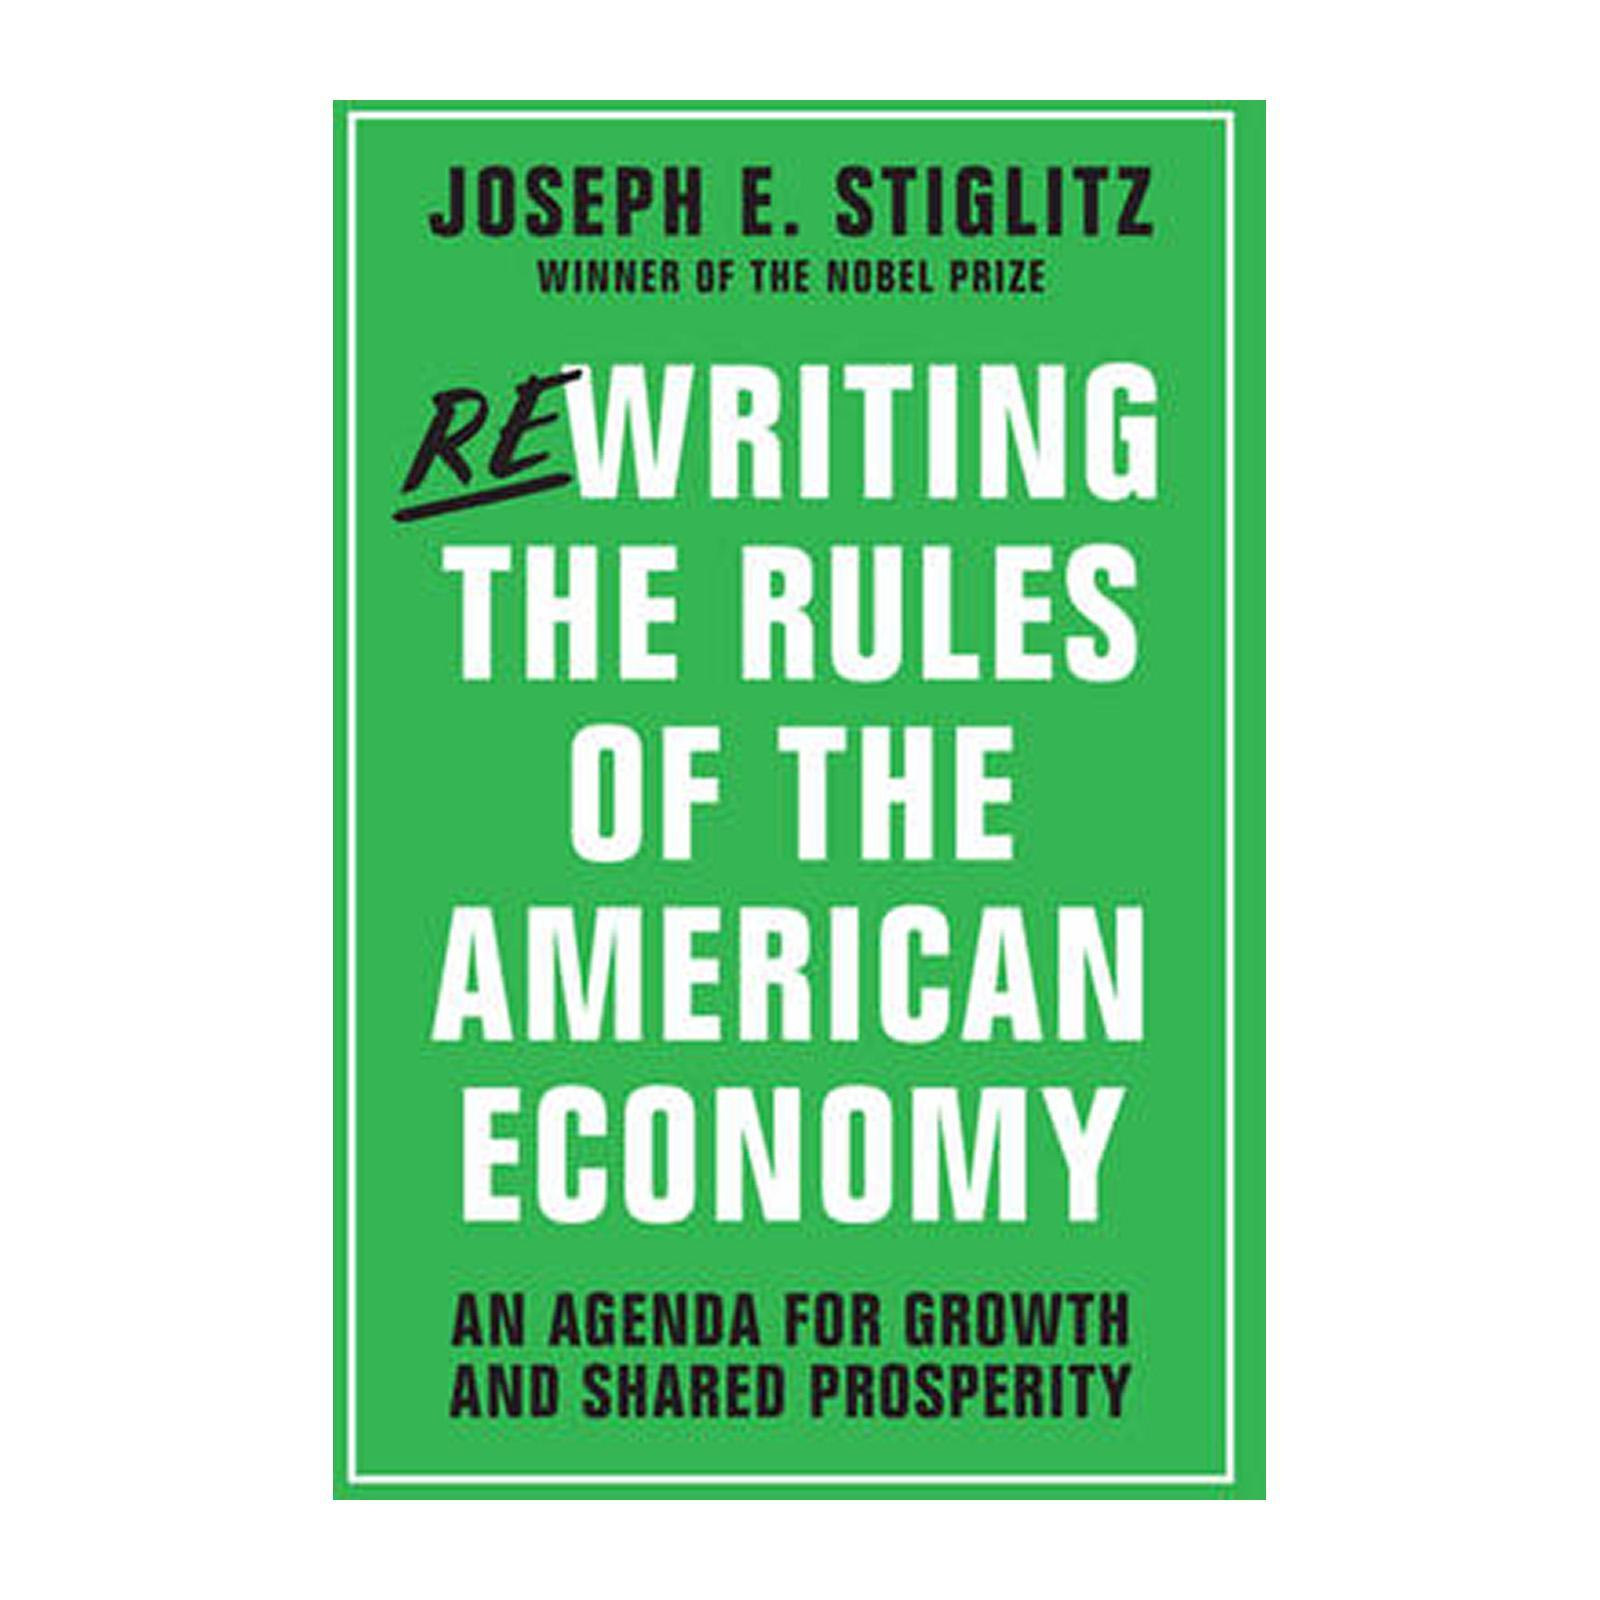 Rewriting The Rules Of The American Economy: An Agenda For Growth And Shared Prosperity (Paperback)